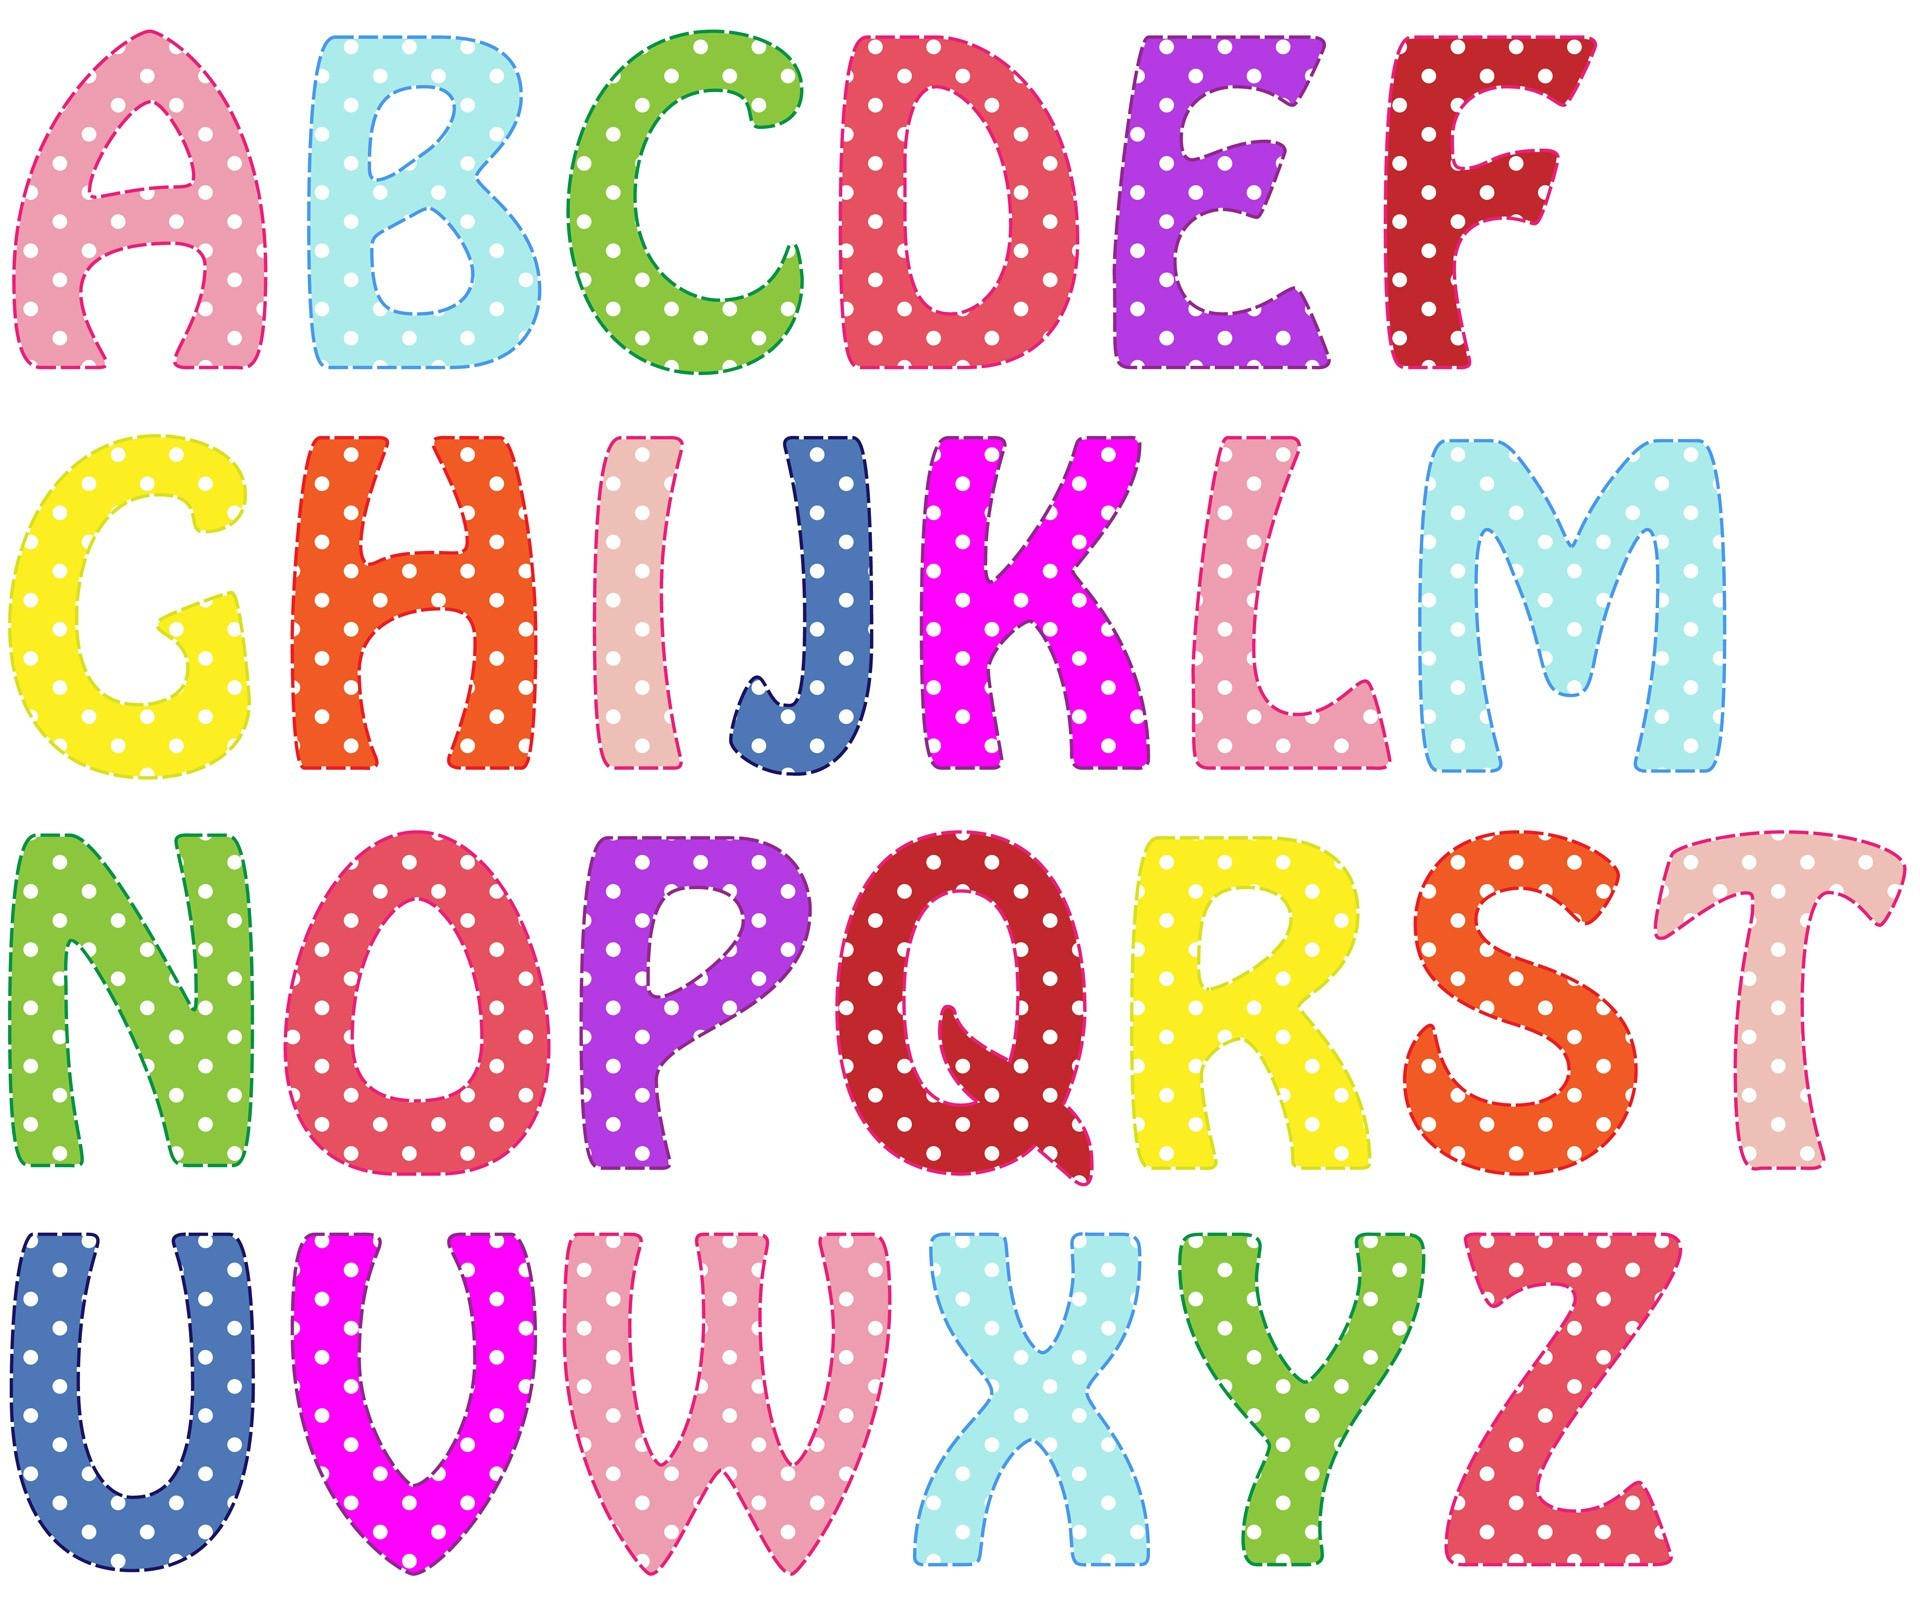 Alphabet clipart printable. Colorful letters collection of